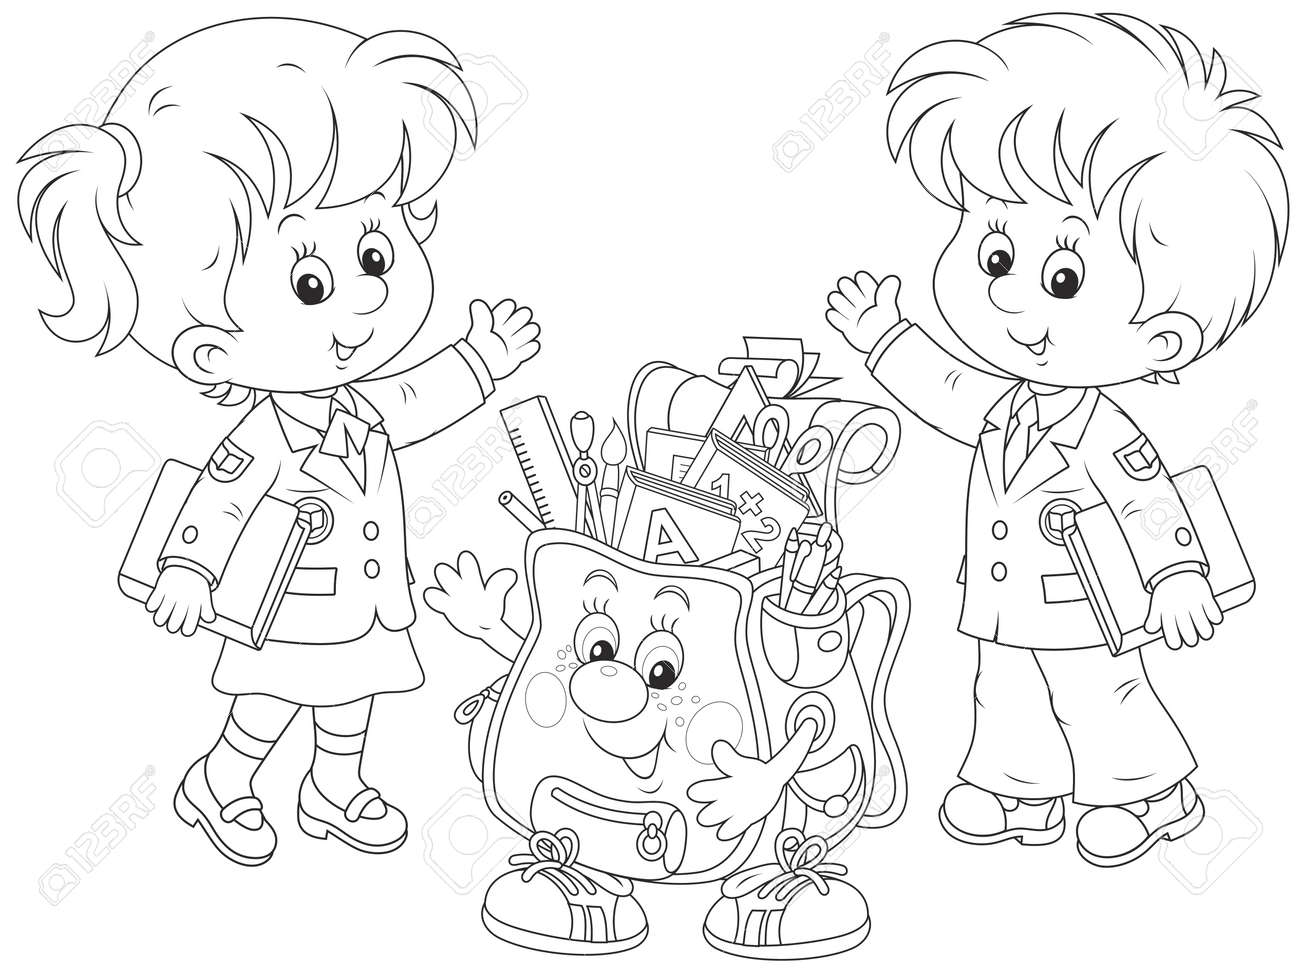 welcome back to school royalty free cliparts, vectors, and stock